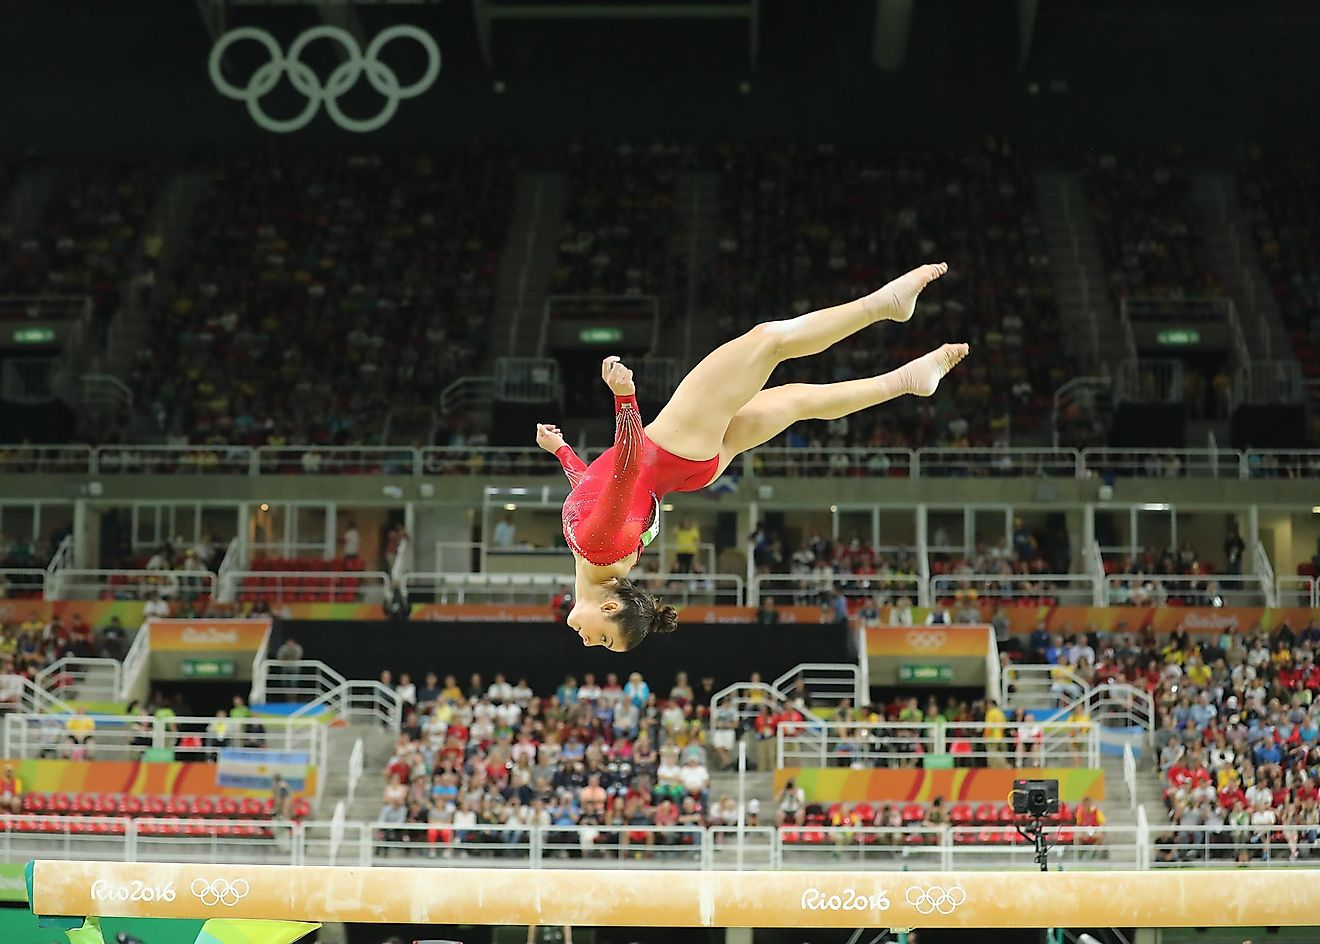 Gymnastics is one of the most watched Summer Olympic sports. Editorial credit: Leonard Zhukovsky / Shutterstock.com.